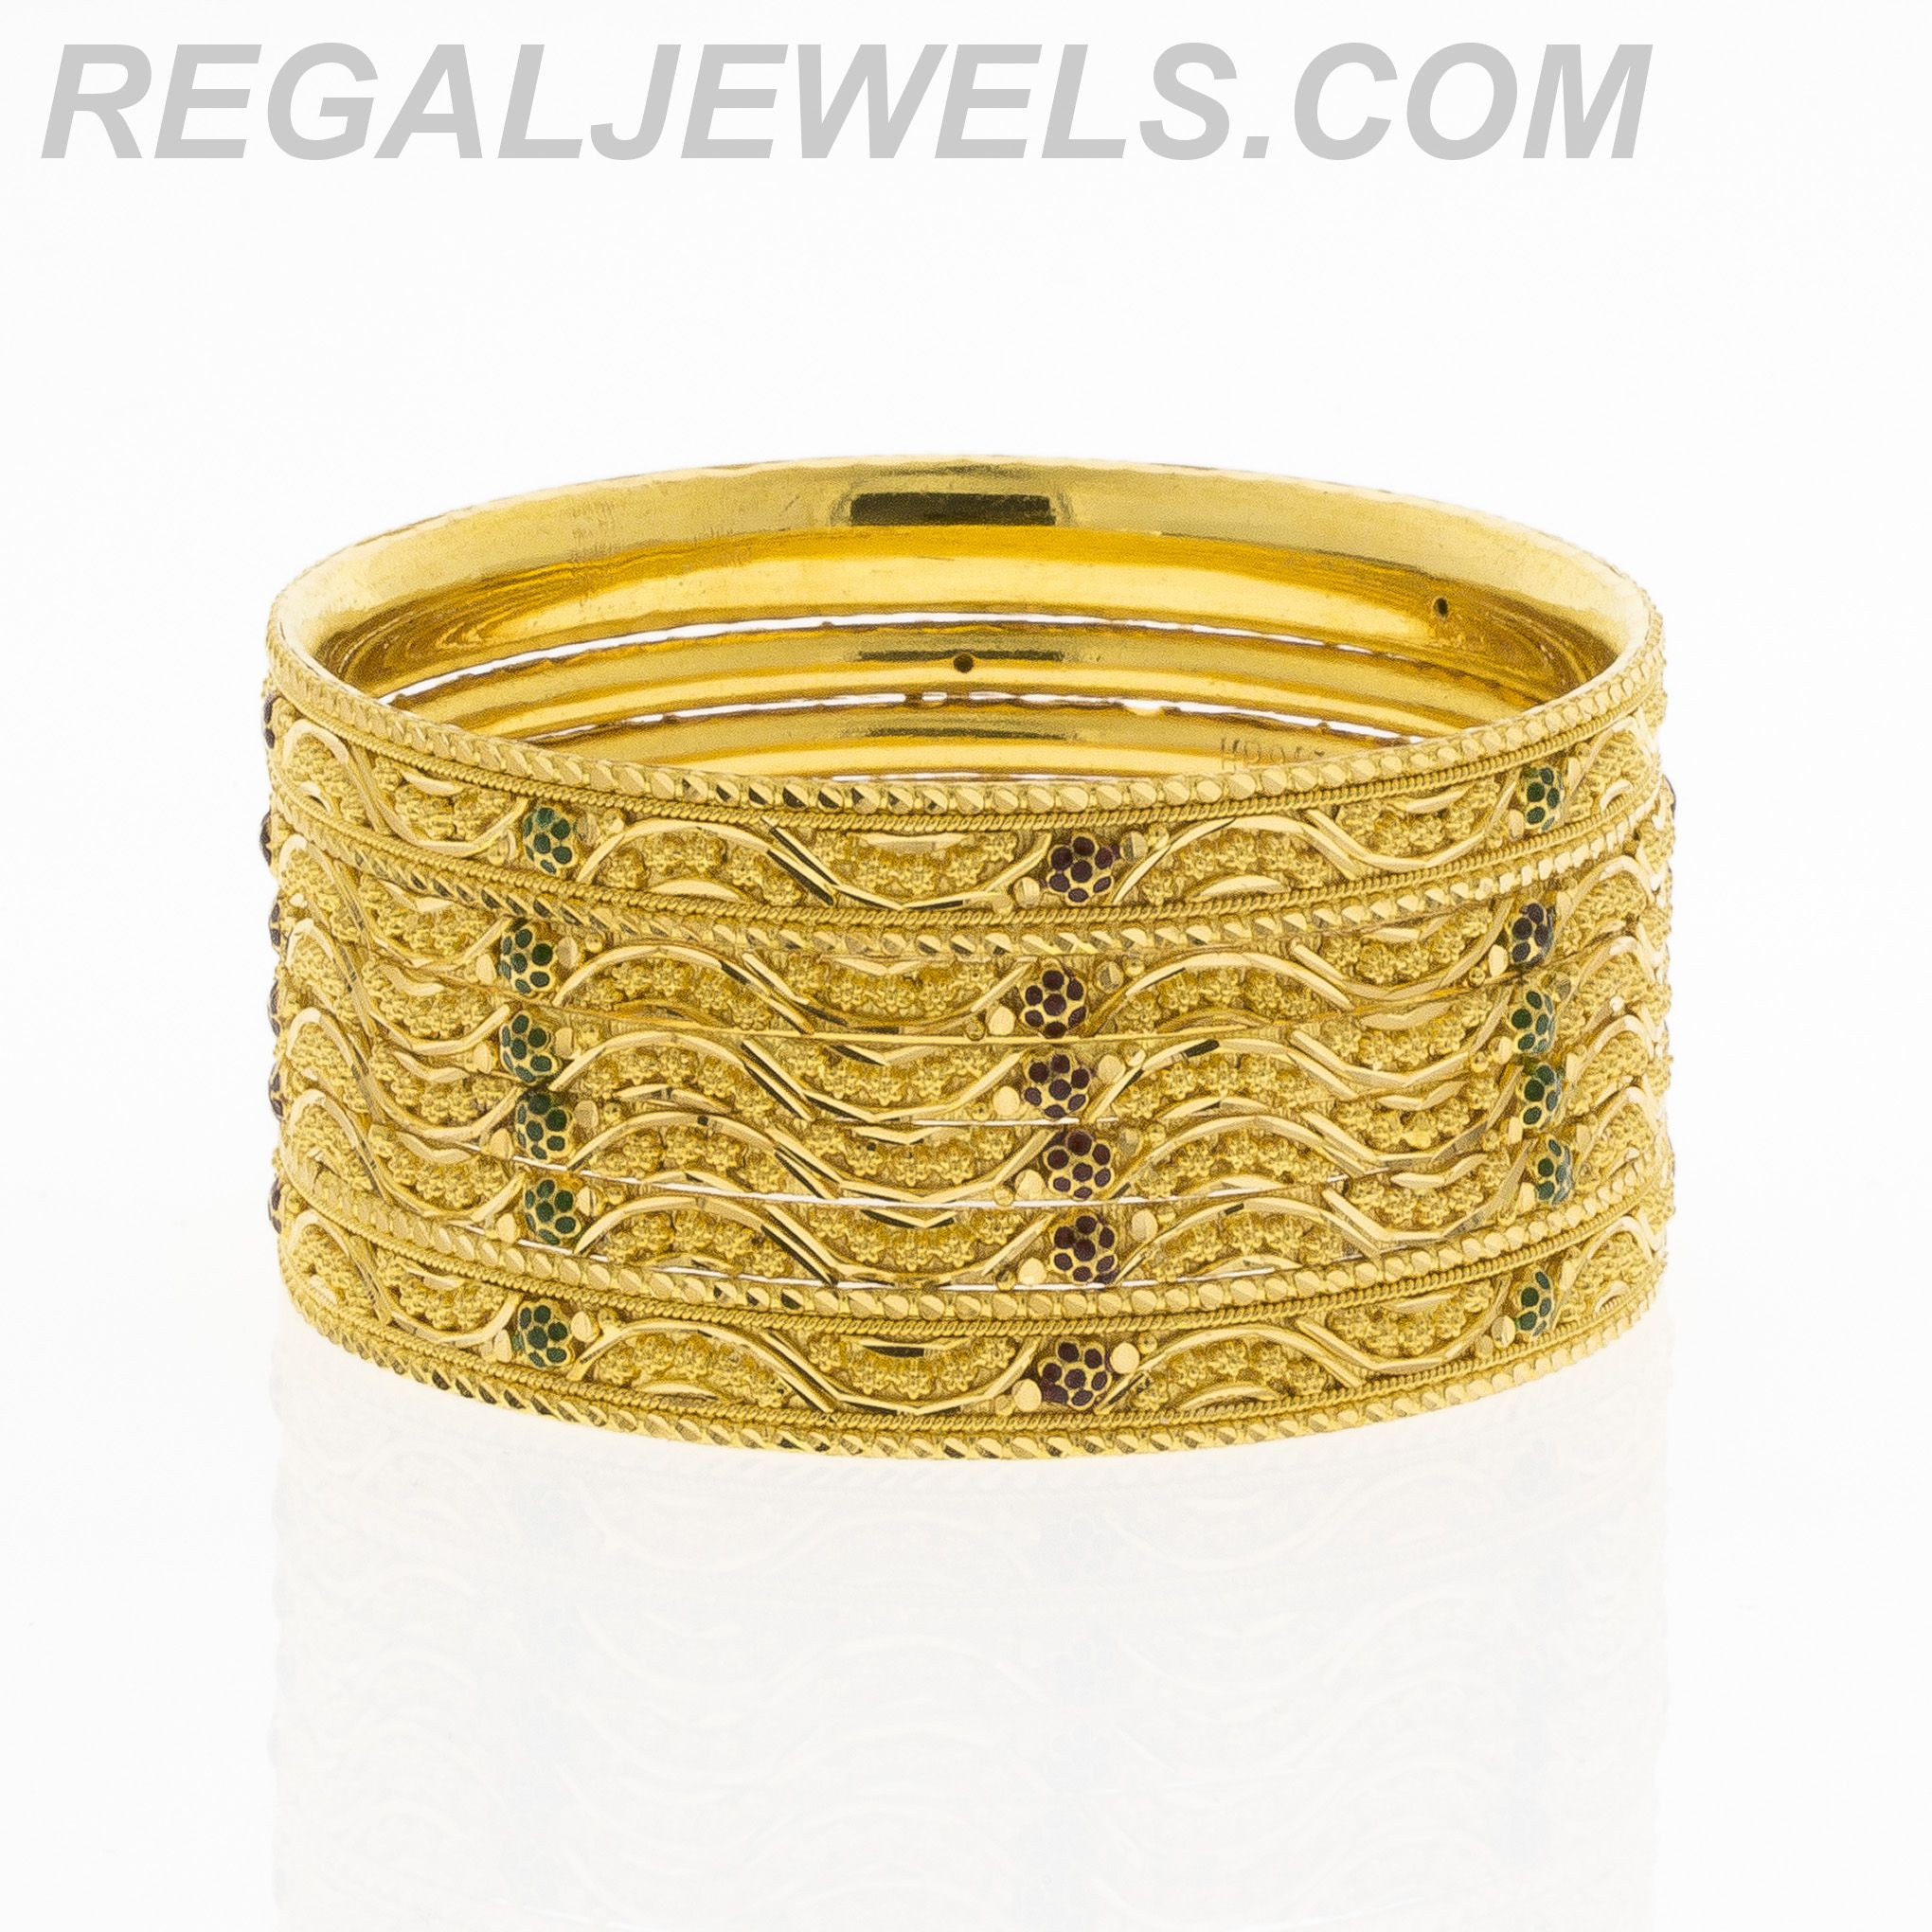 contemporary fashion bracelets plated bangles bangle jewelry products mesh gold monaco beloved trendy sparkles daily wide bracelet